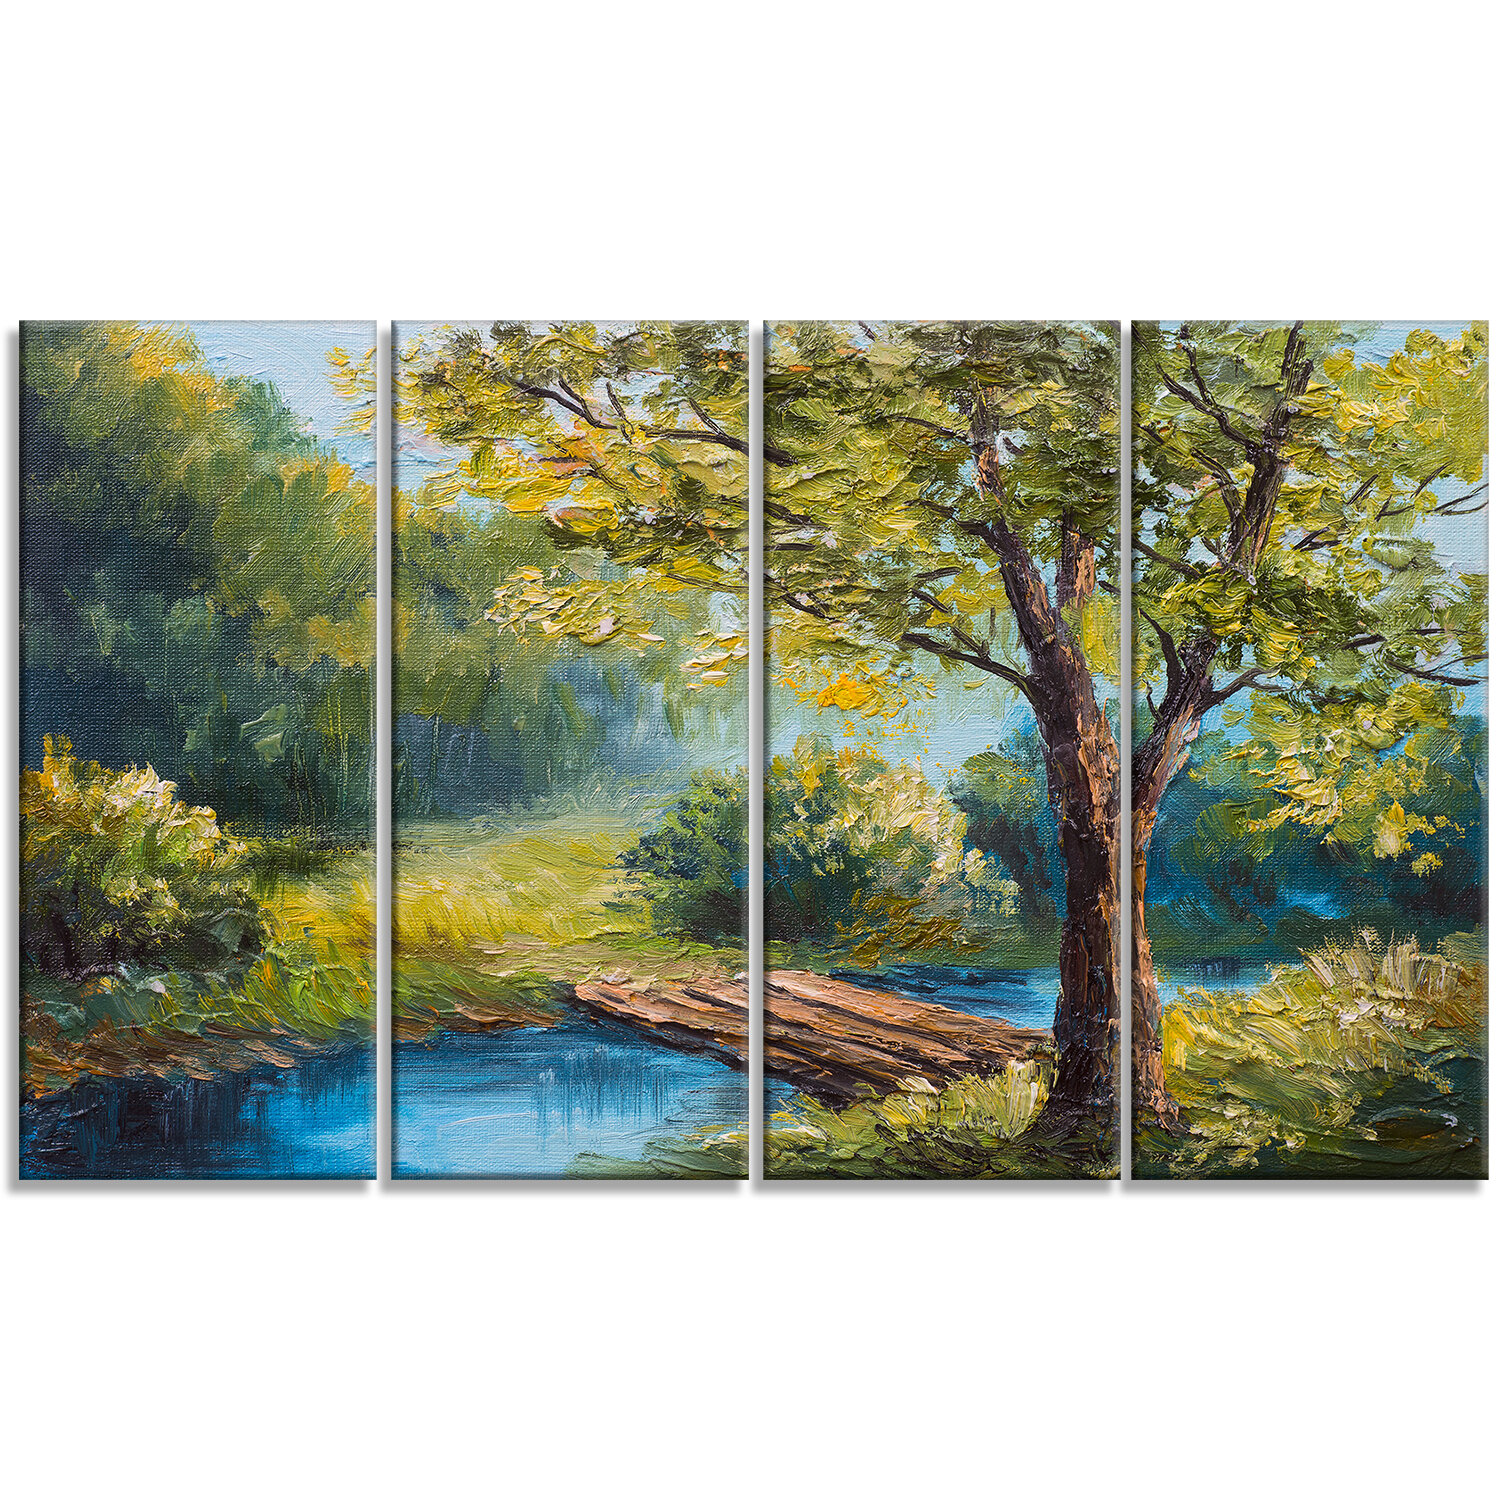 Designart Summer Forest With Beautiful River Landscape 4 Piece Painting Print On Wrapped Canvas Set Wayfair